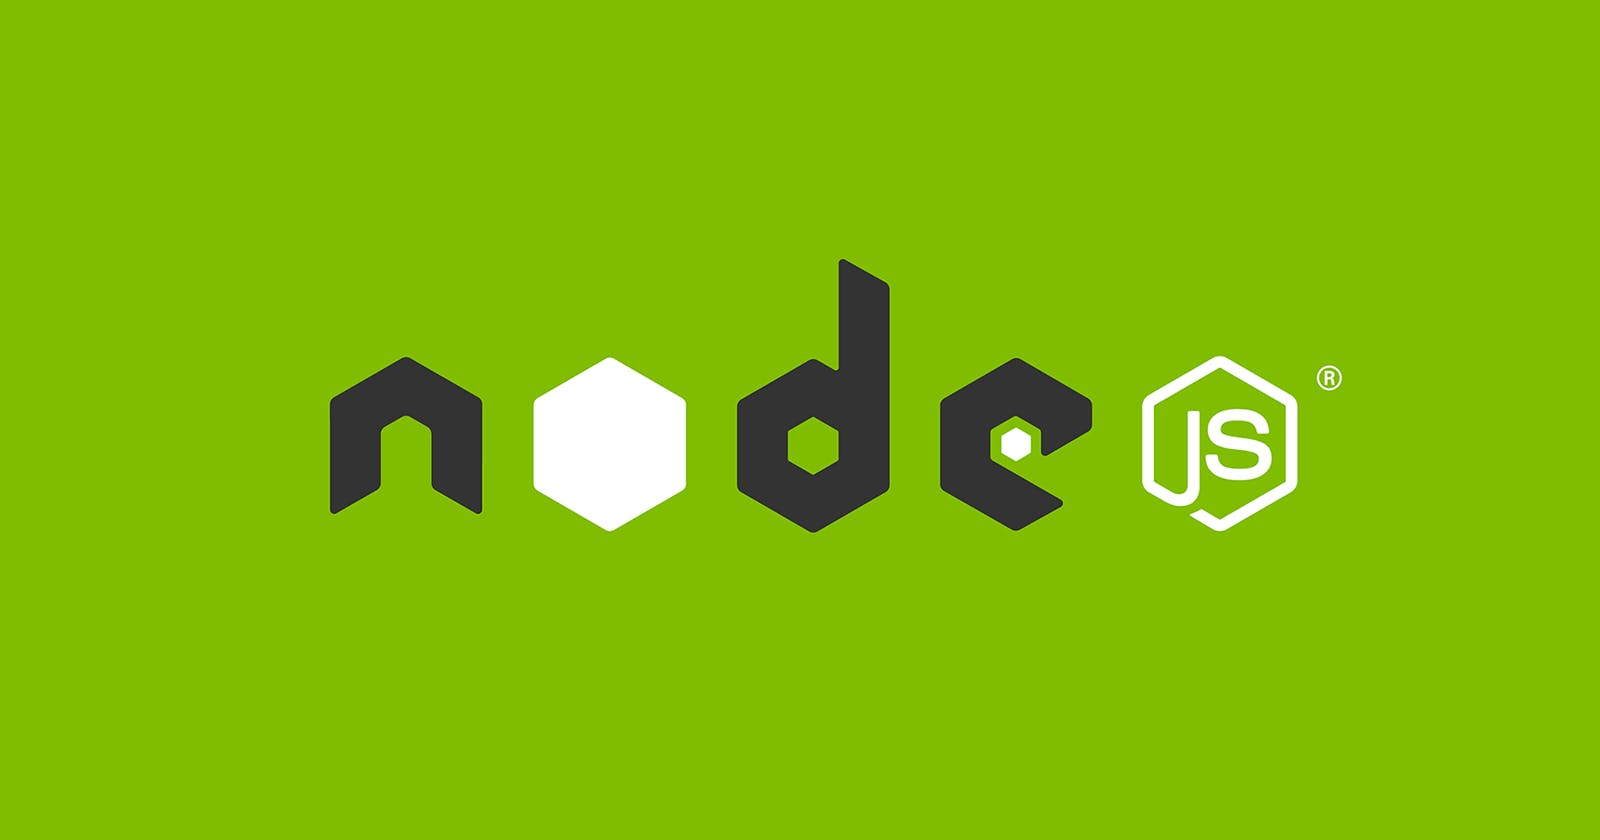 Node js Architecture in less than 5 minutes!